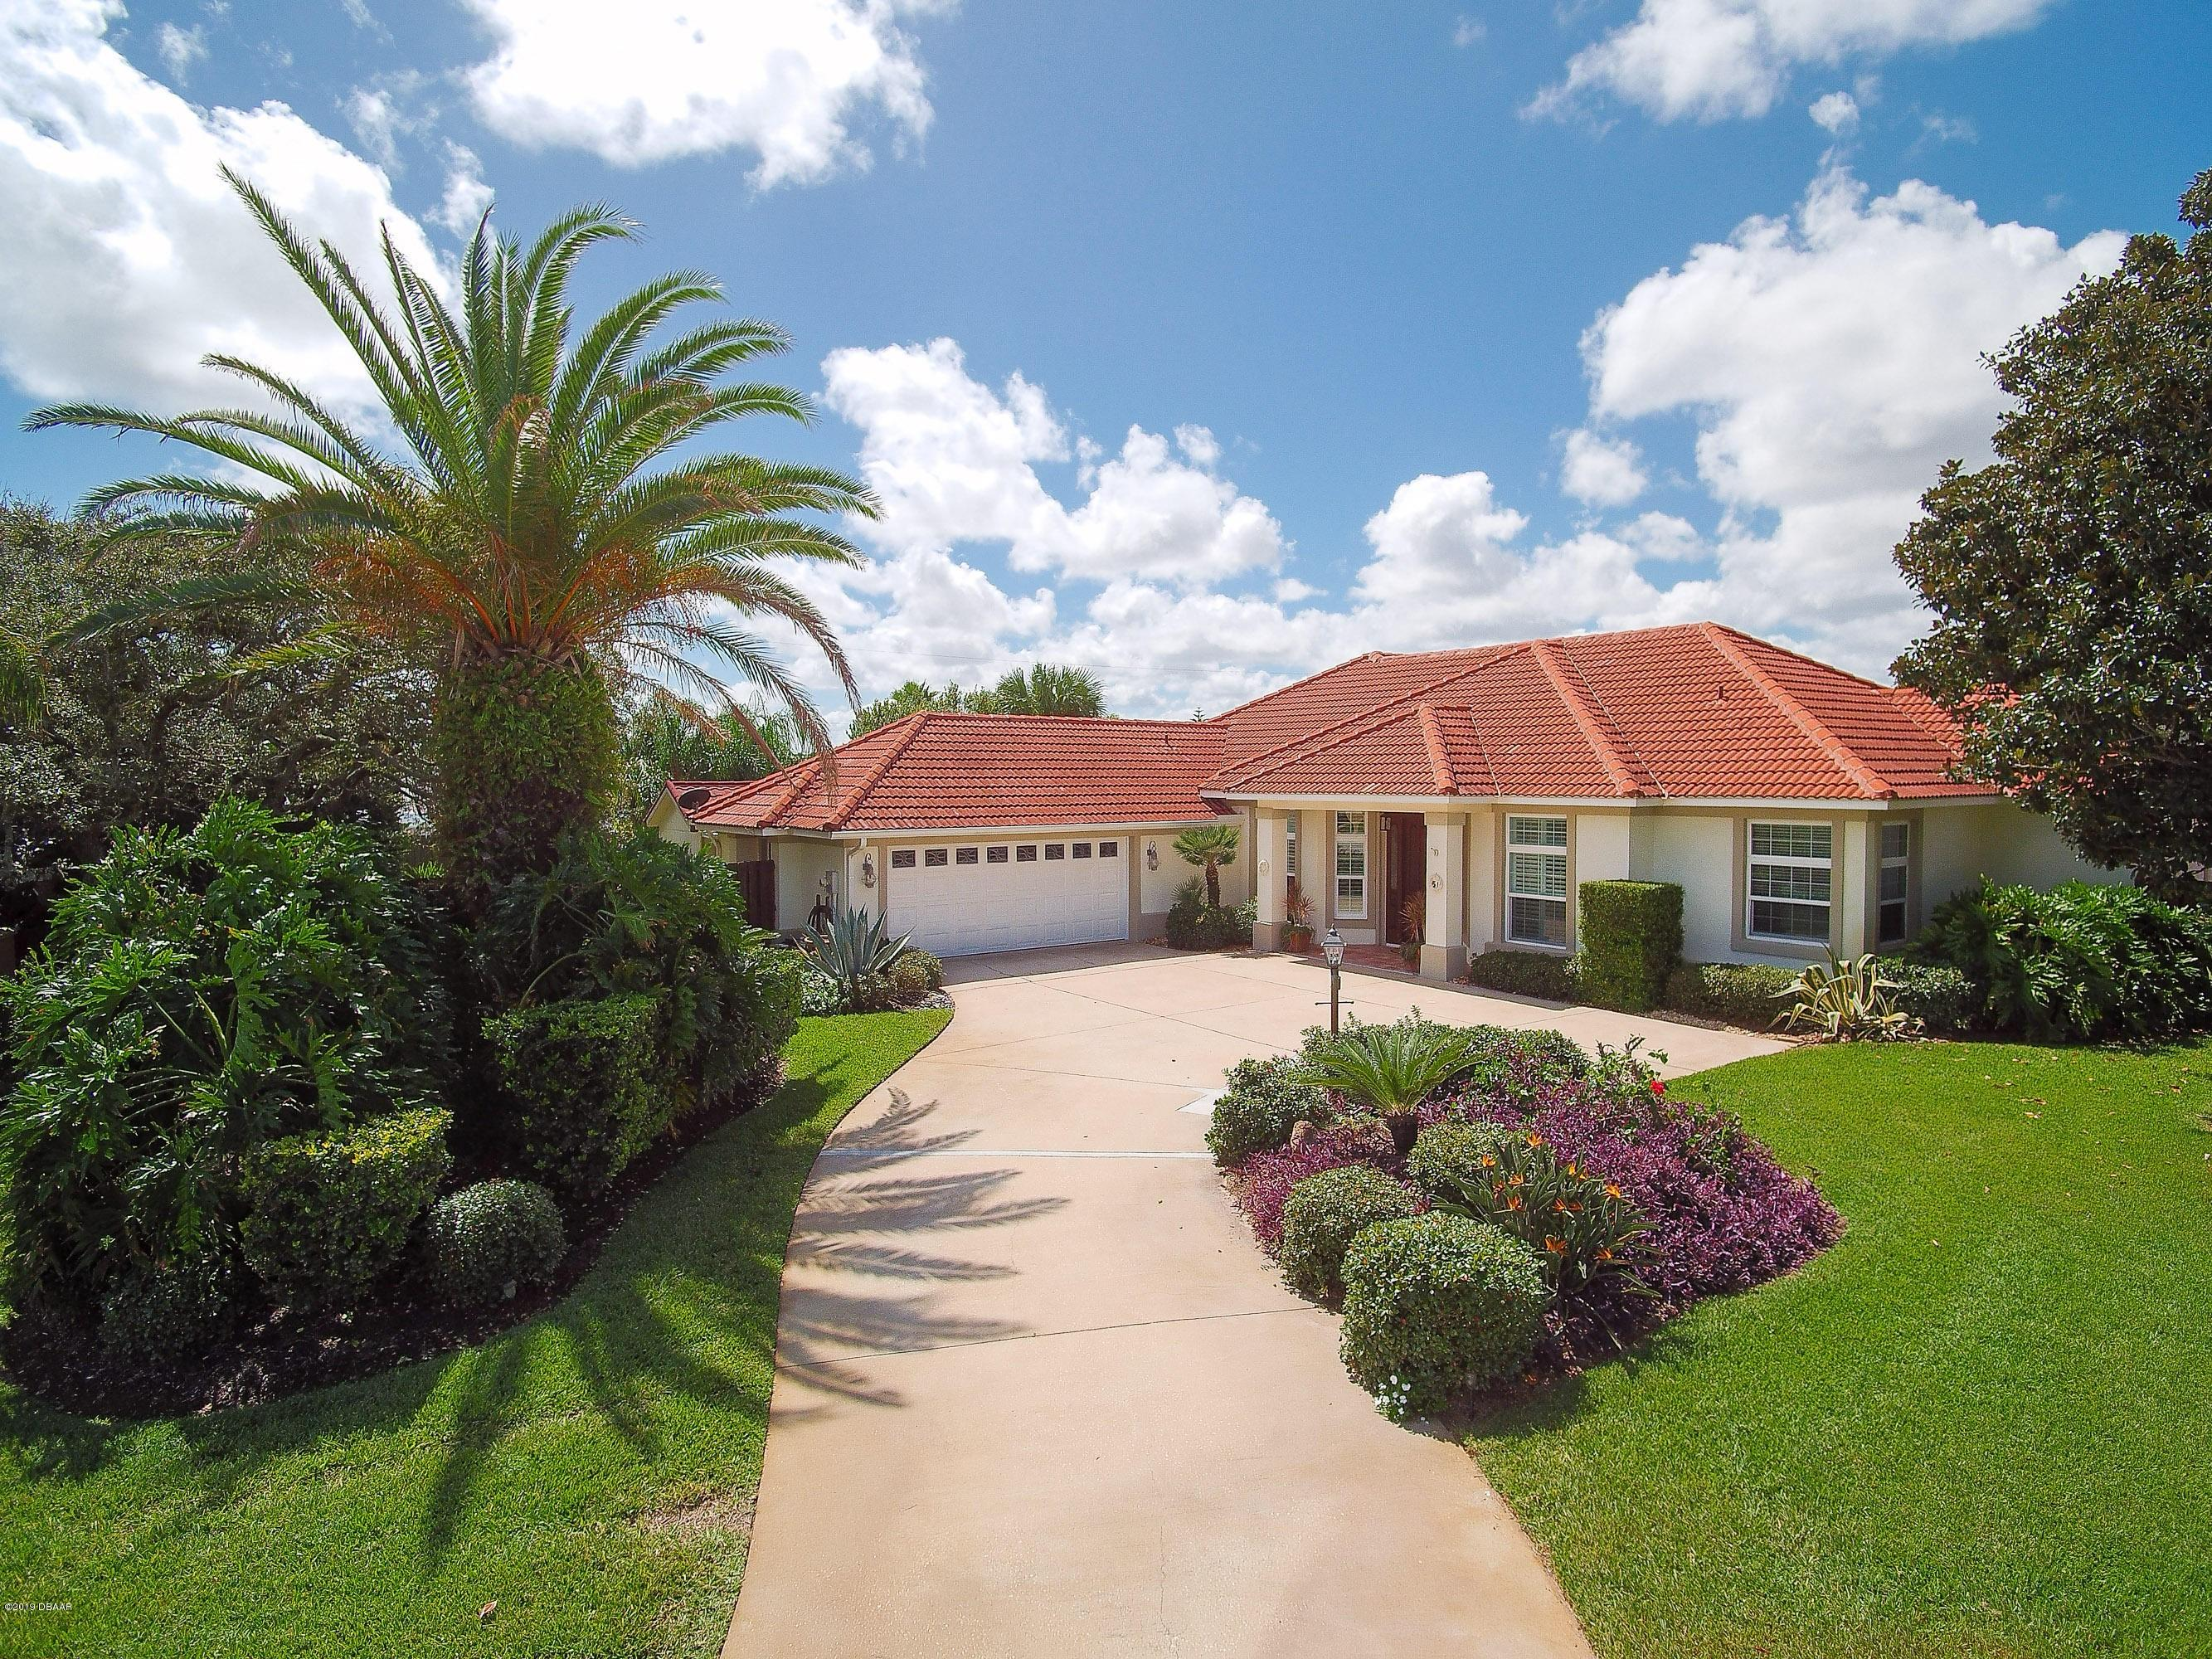 30 Spanish Waters Drive, Ormond-By-The-Sea, Florida